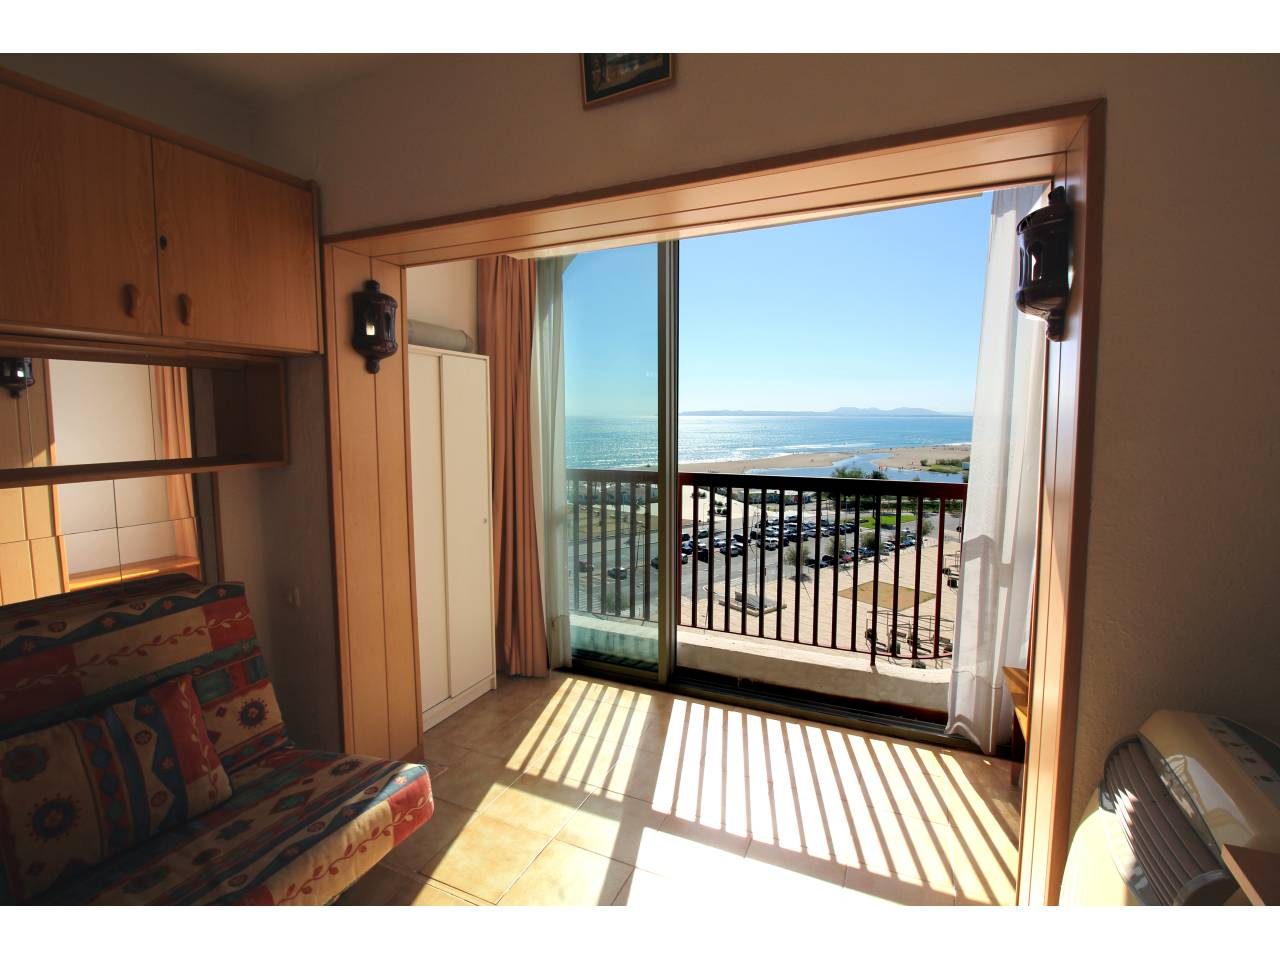 000022 - ALBATROS Studio with open room and view to the sea